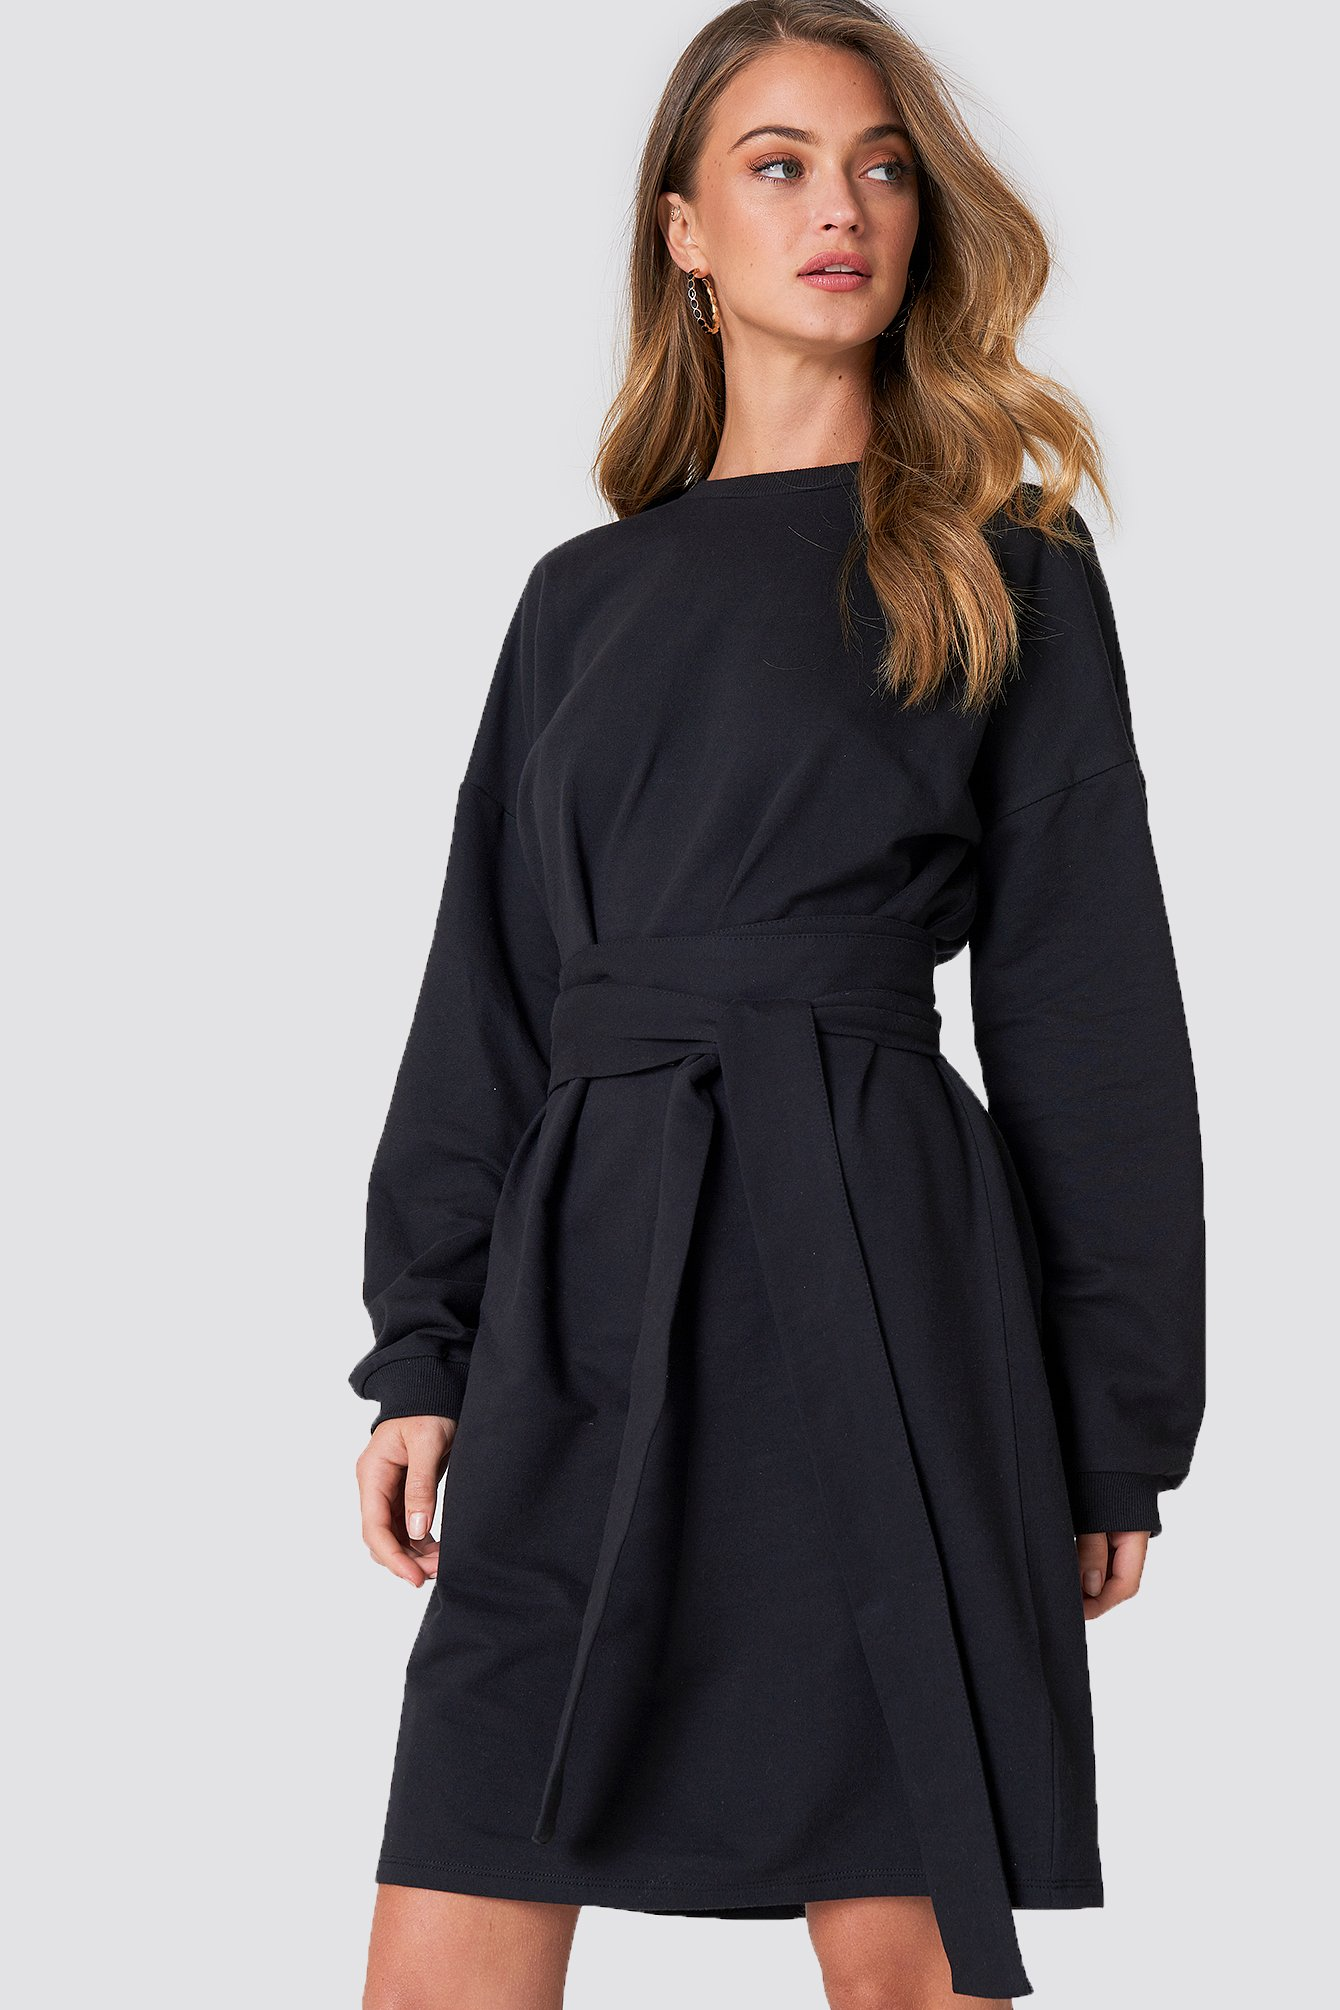 Black Tied Waist Oversize Dress